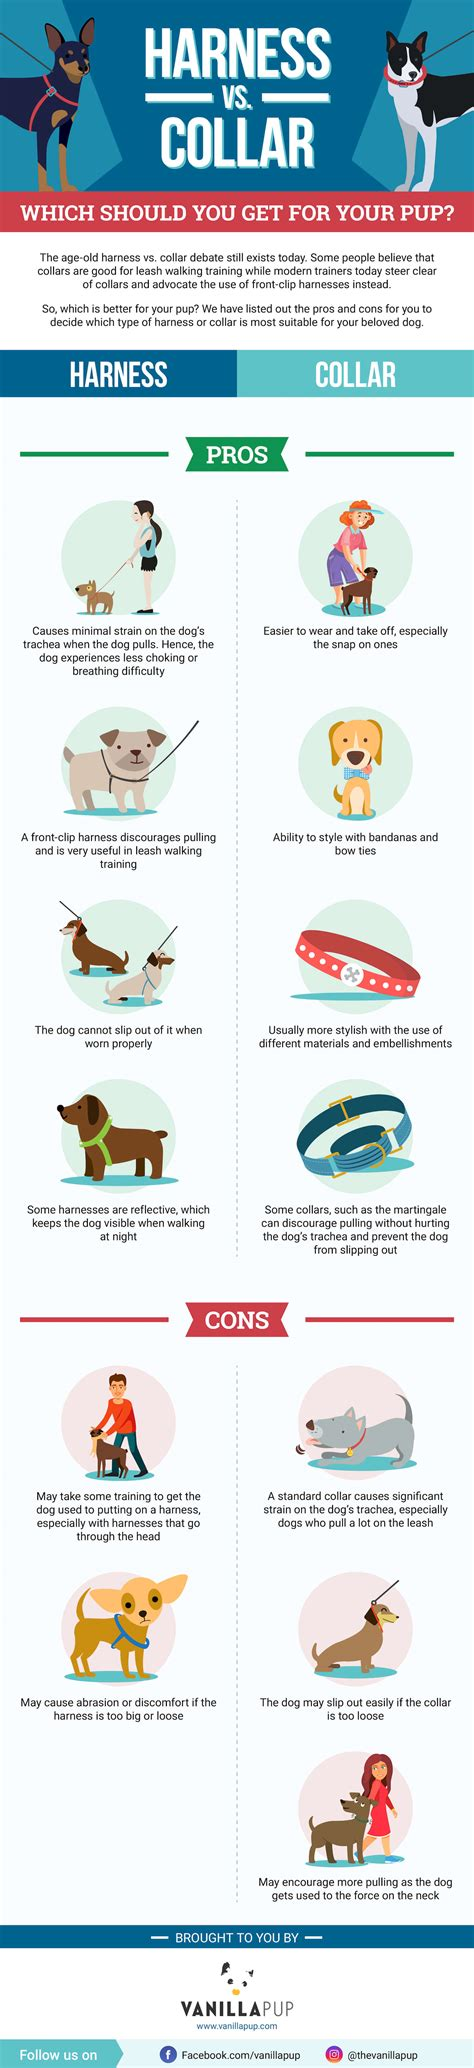 harness vs collar for puppy infographic harness vs collar which is better for your